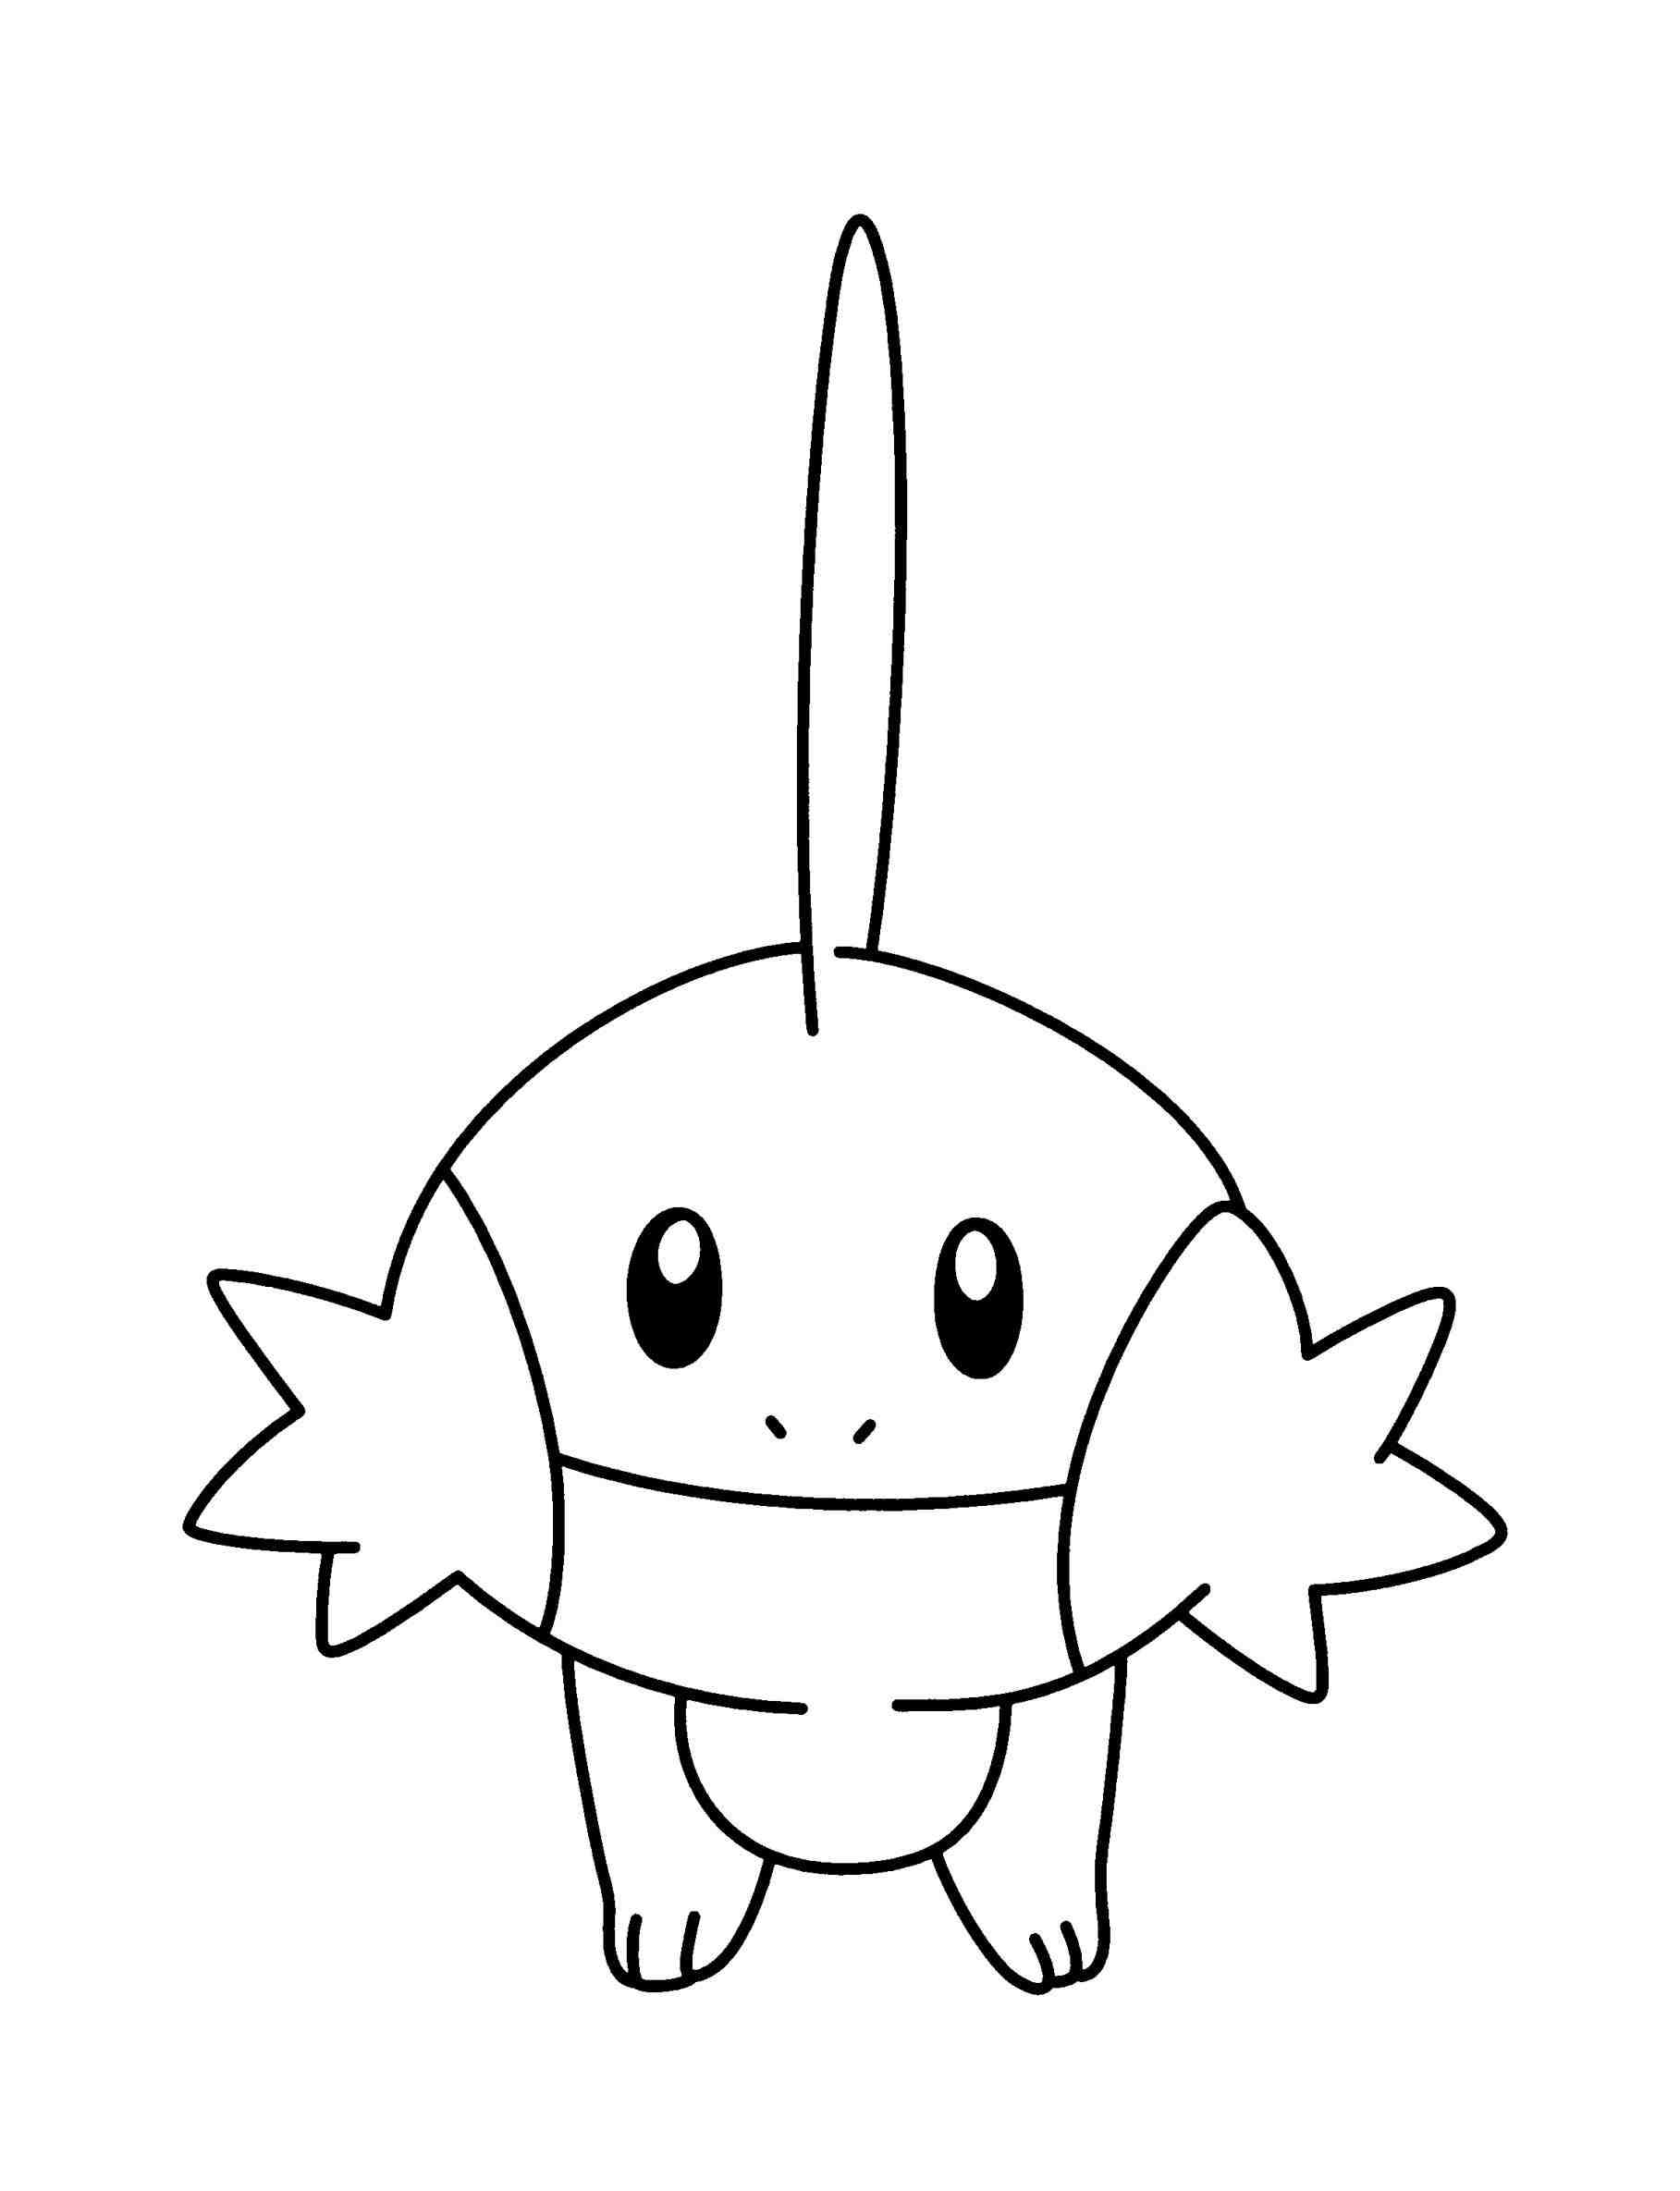 1817x2370 Mudkip Coloring Pages Web Coloring Pages